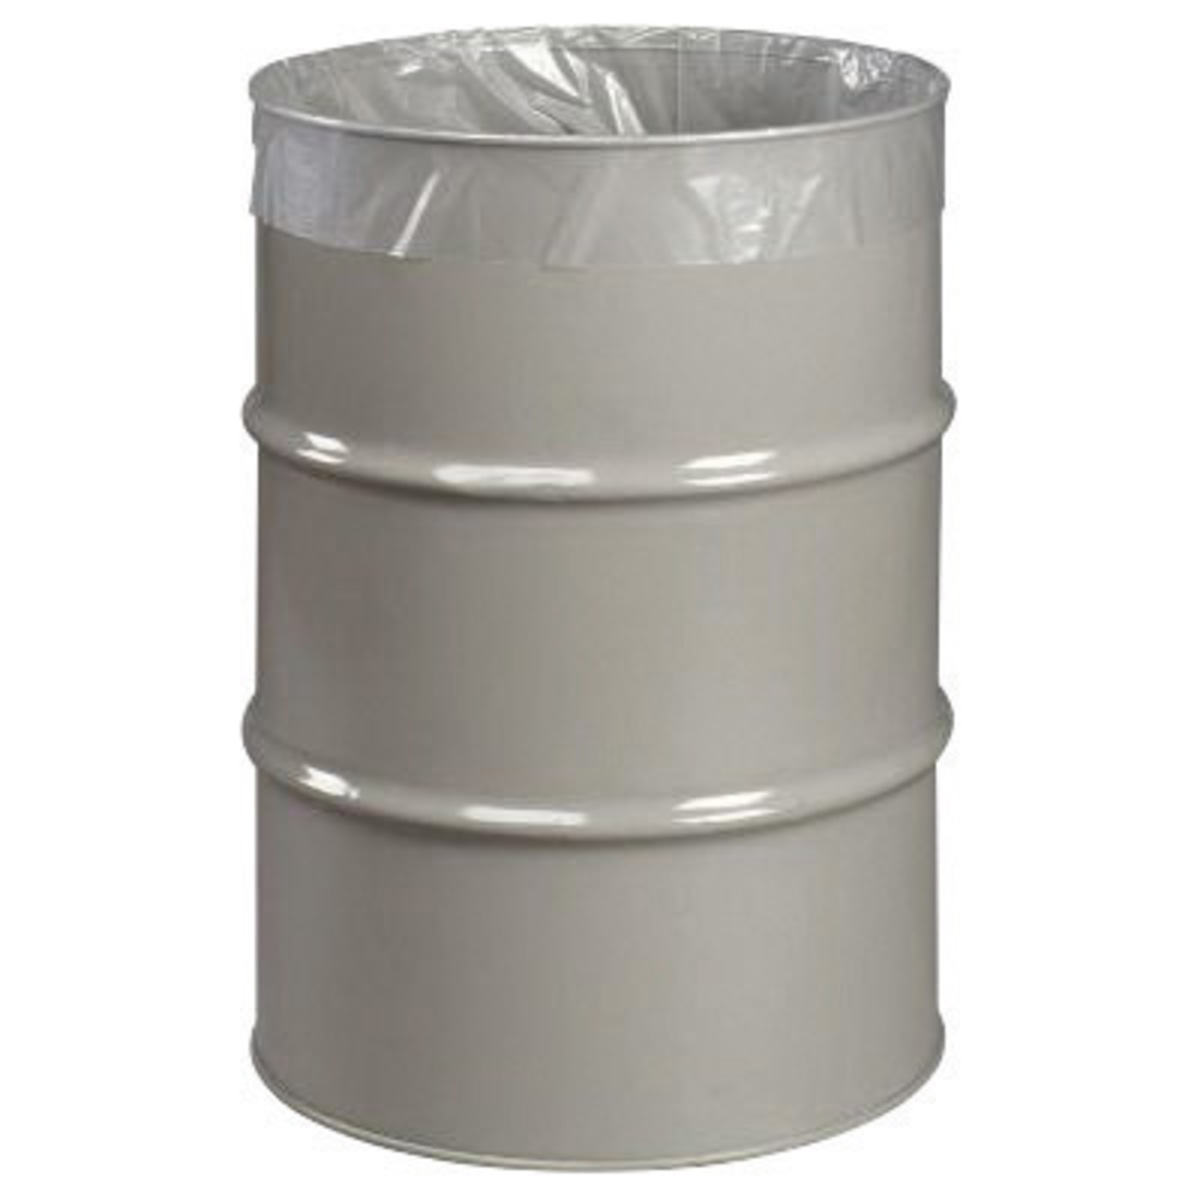 55 Gallon Drum Liners Clear : Airgas poahwy poly america quot gallon